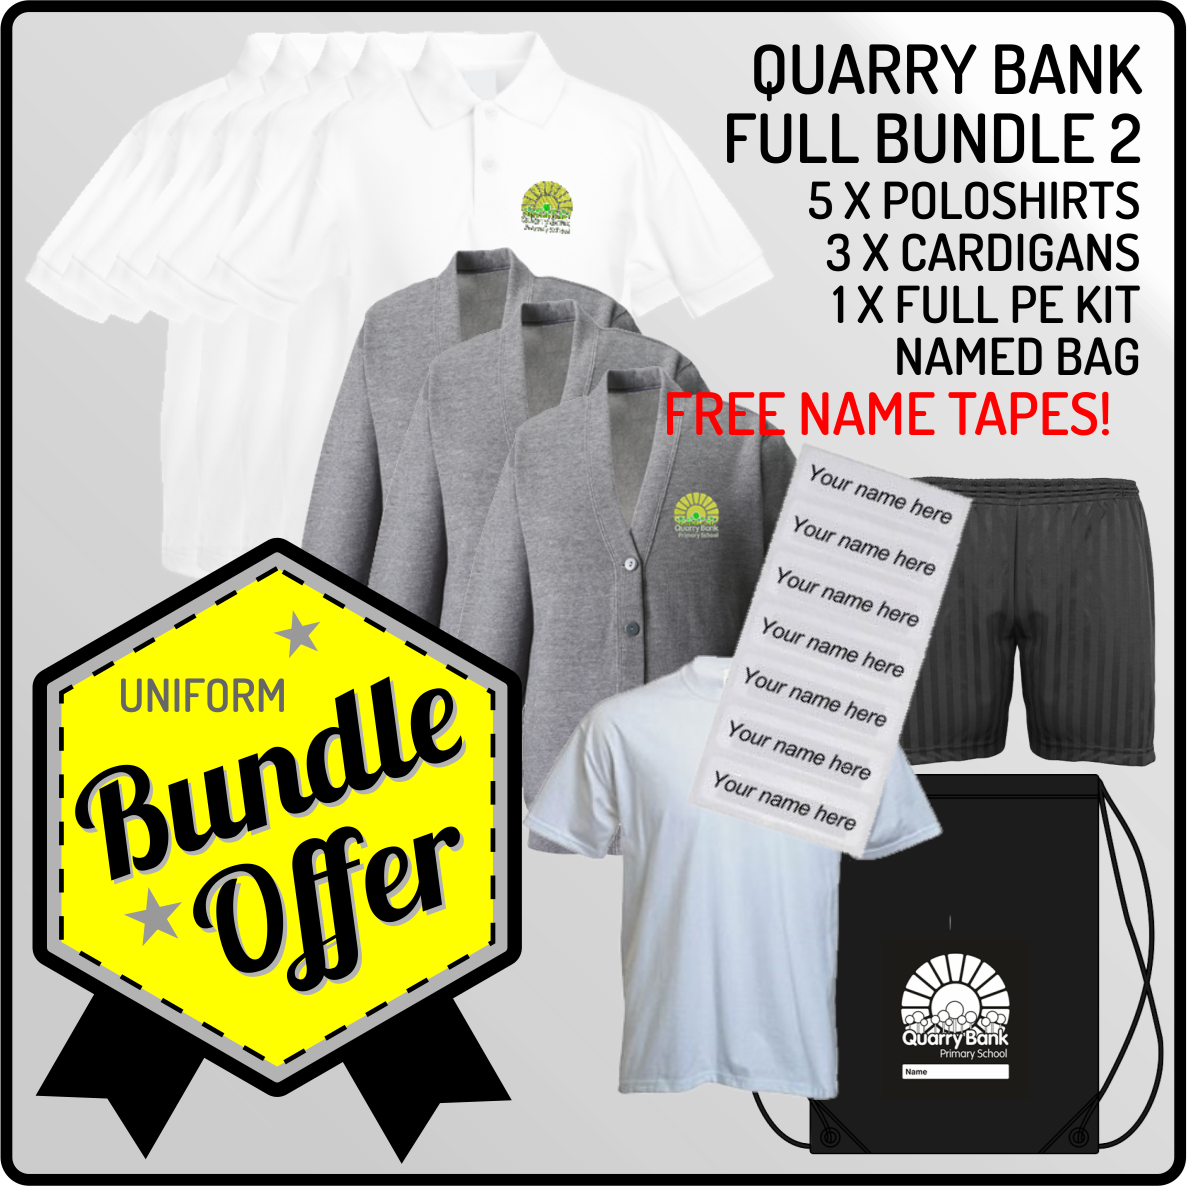 Bundle offer of 5 Poloshrts, 3 Cardigans, PE T, Shorts and PE Bag - INCLUDES FREE NAME TAPES